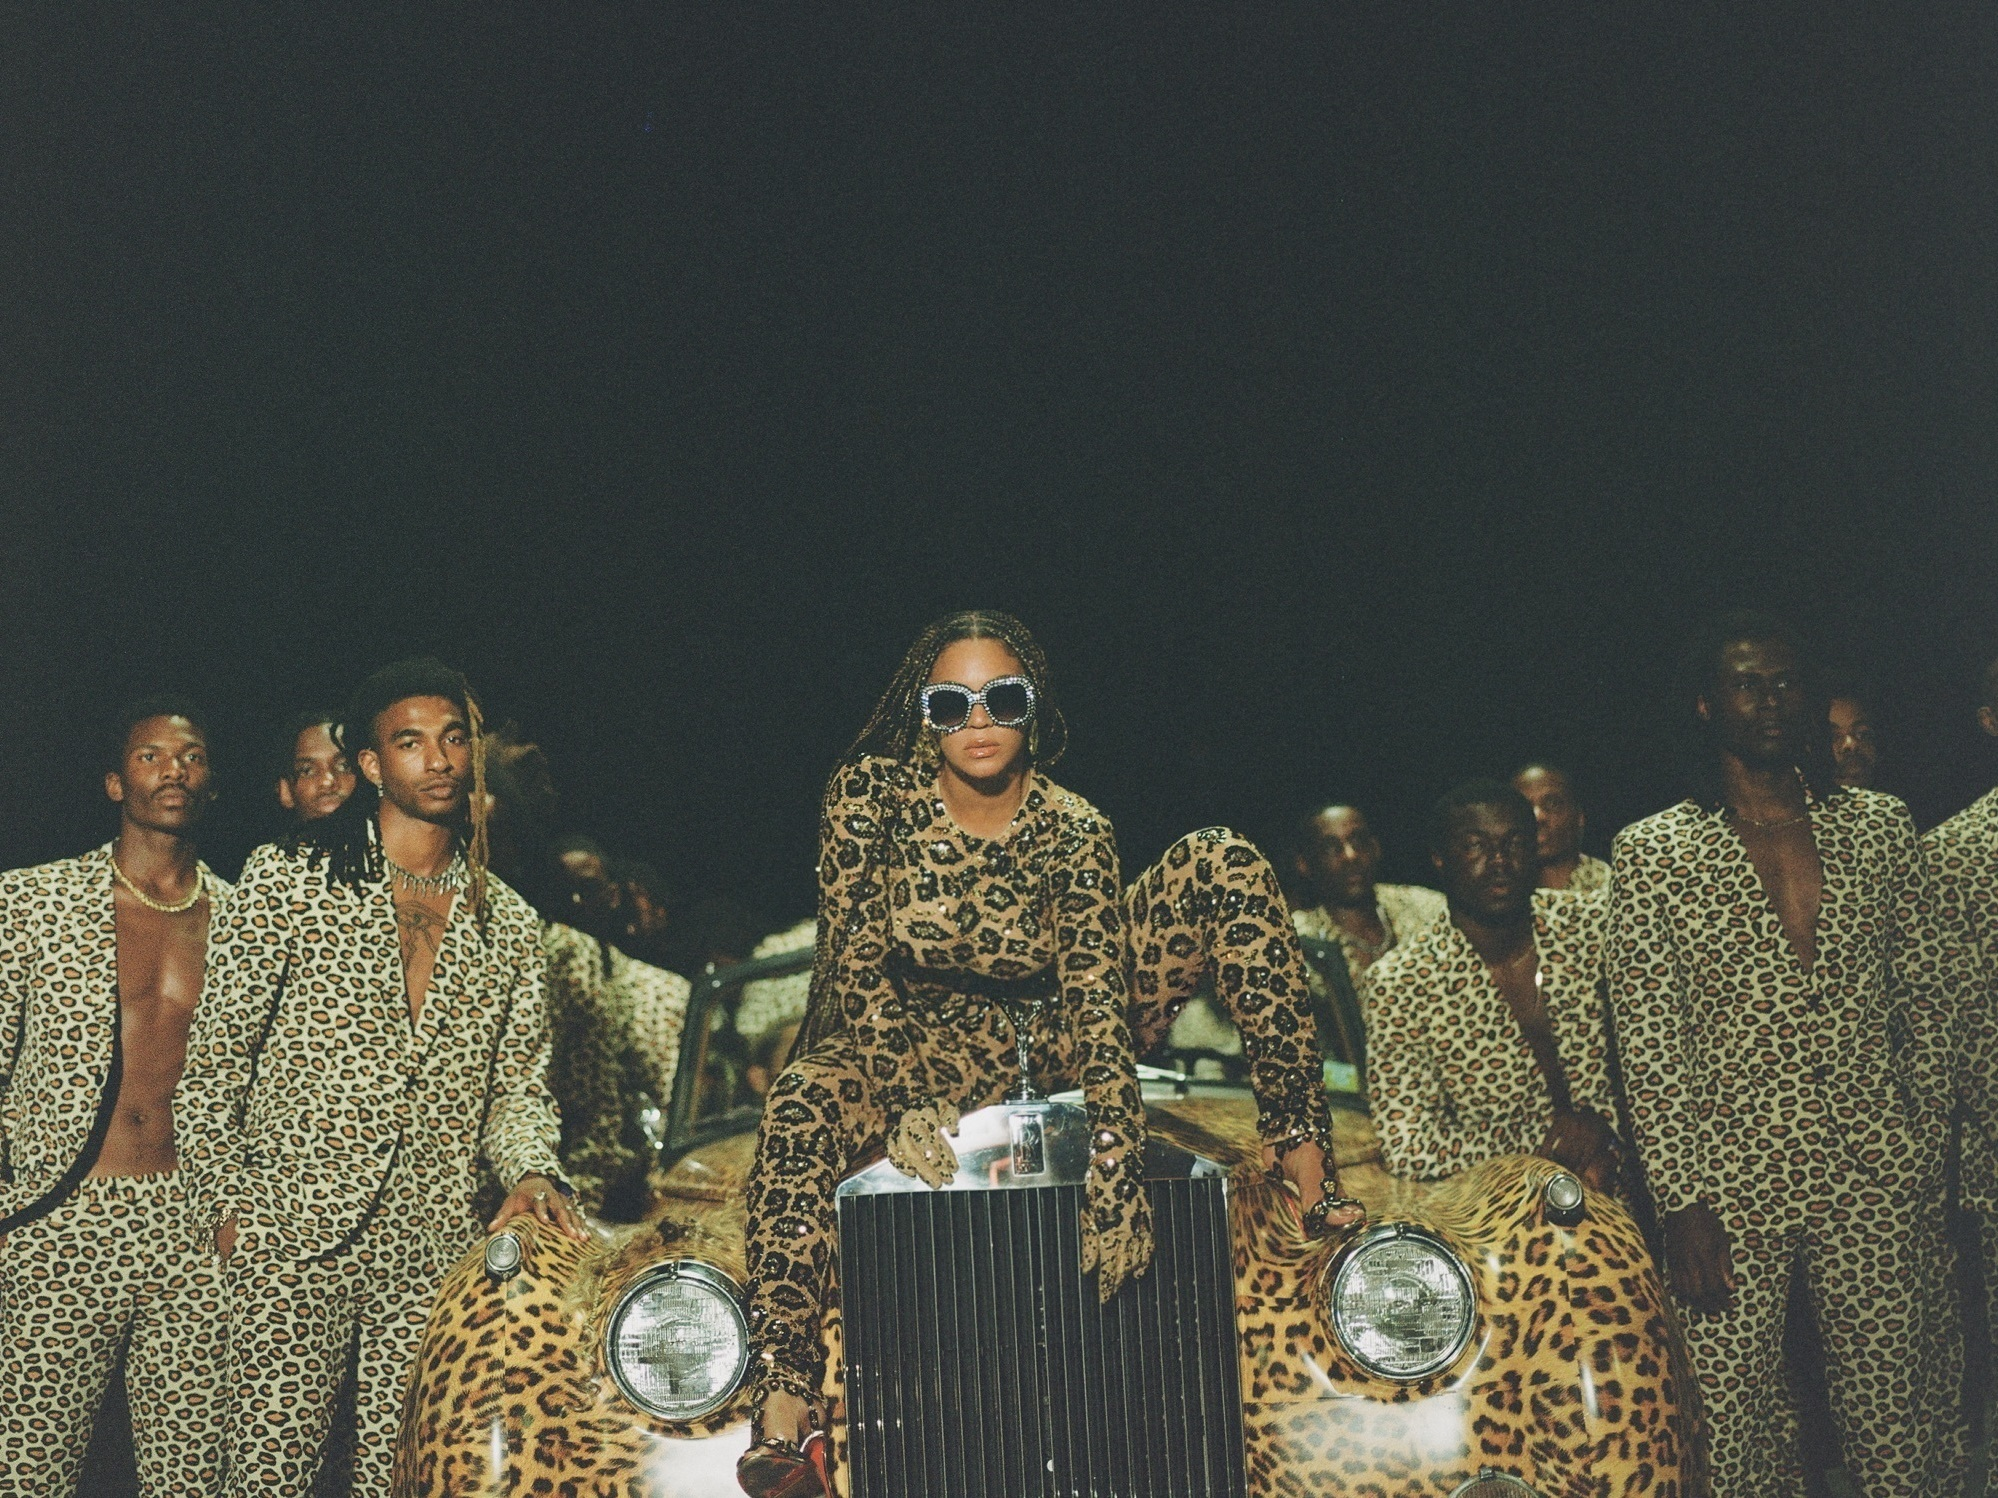 KUOW - Beyonce's Visual Ode, 'Black Is King,' Arrives